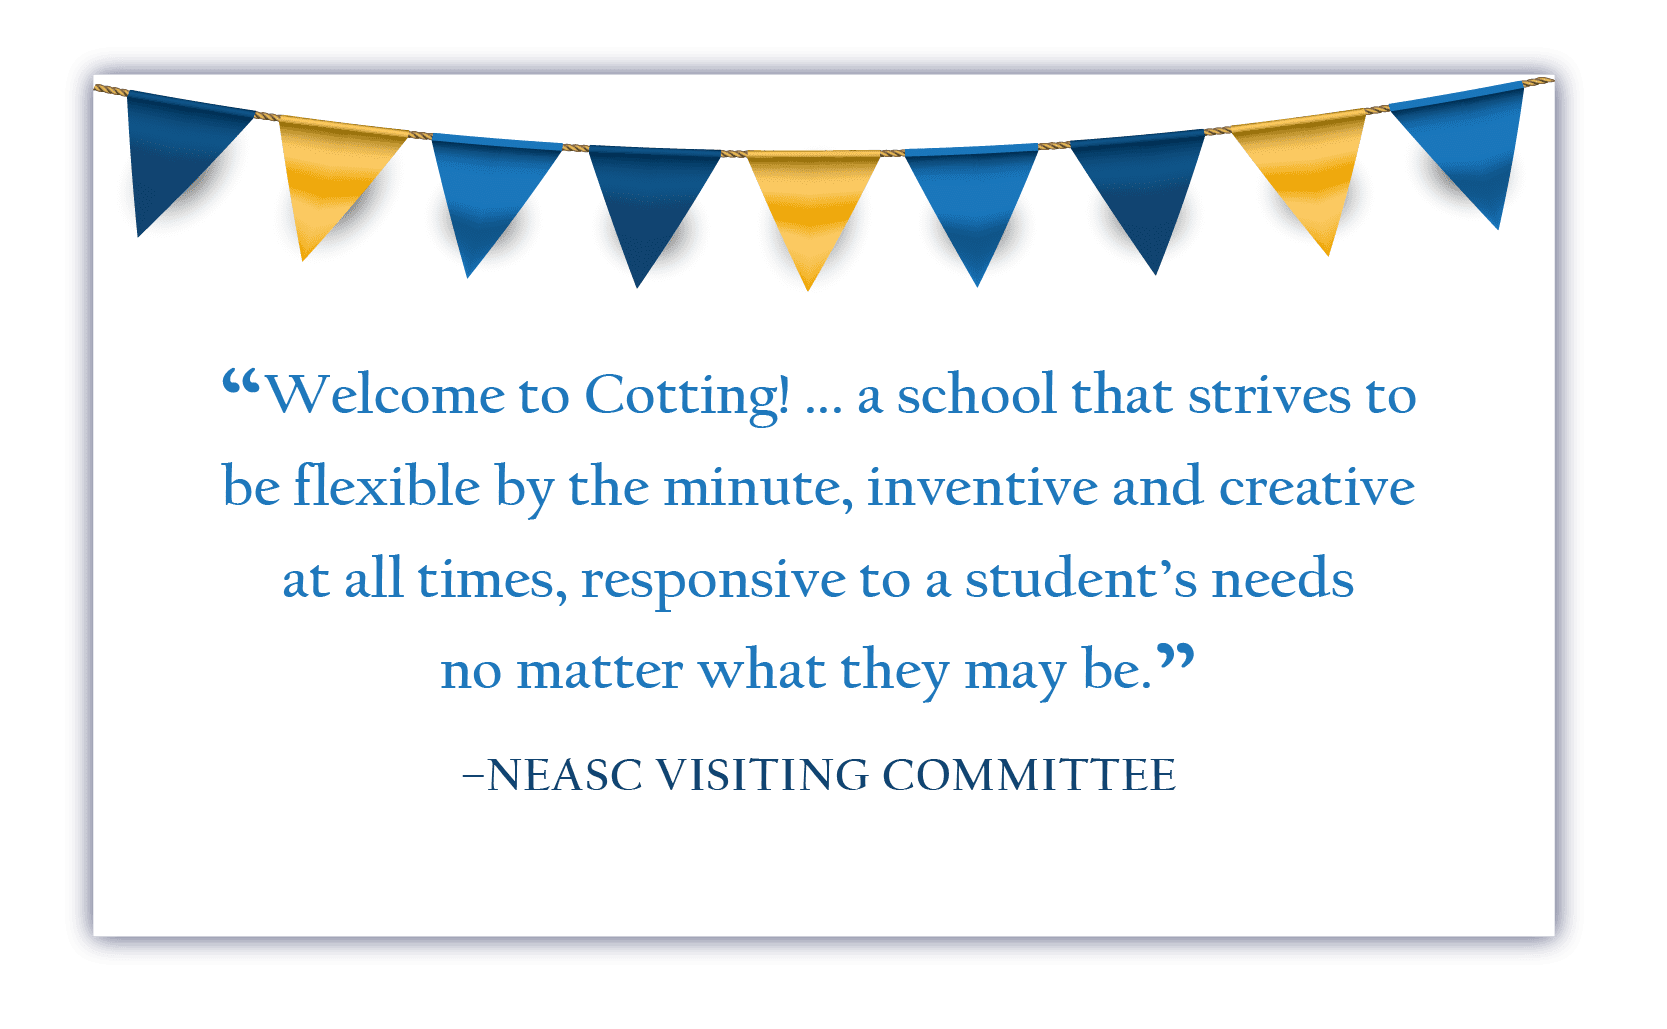 NEASC Visiting Committee Quote